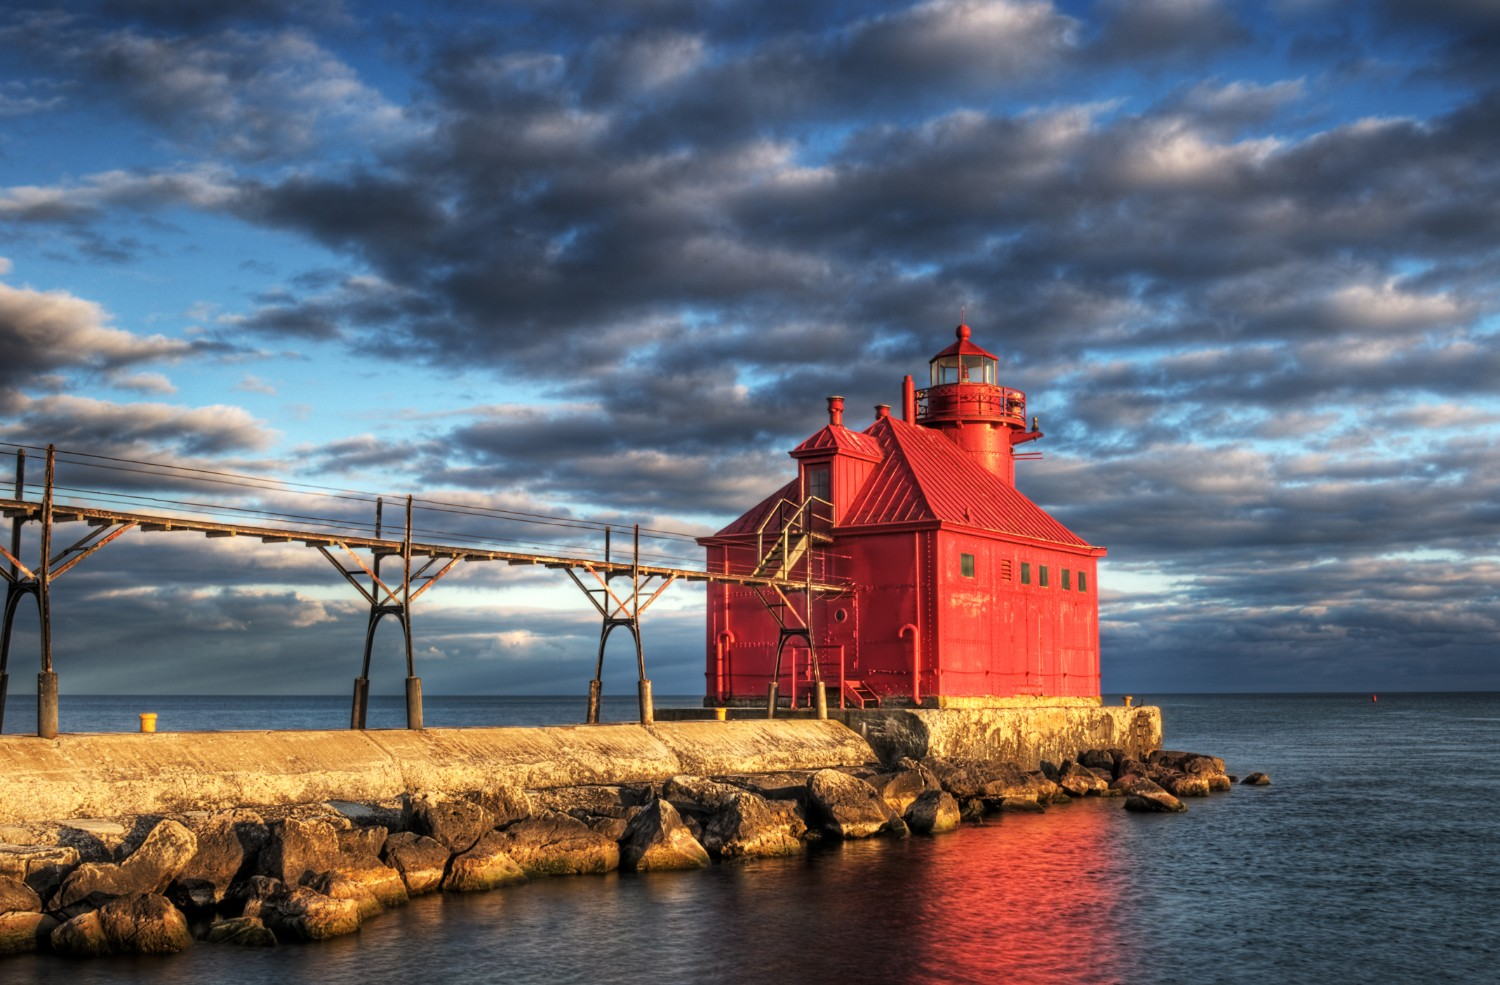 Door County Bed and Breakfasts | Door County Inns | Select ... on map of peninsula state park wi, map of castle rock lake wi, map of lakewood wi, map of black river falls wi, map of apostle islands wi, map of city of madison wi, map of liberty grove wi, map of beloit wi, map of racine wi, map of green bay wi, map of washington island wi, map of algoma wi, map of baileys harbor wi, map of jacksonport wi, map of wisconsin, map of the fox valley wi, map of menomonie wi, map of ohio by county, map of de soto wi,